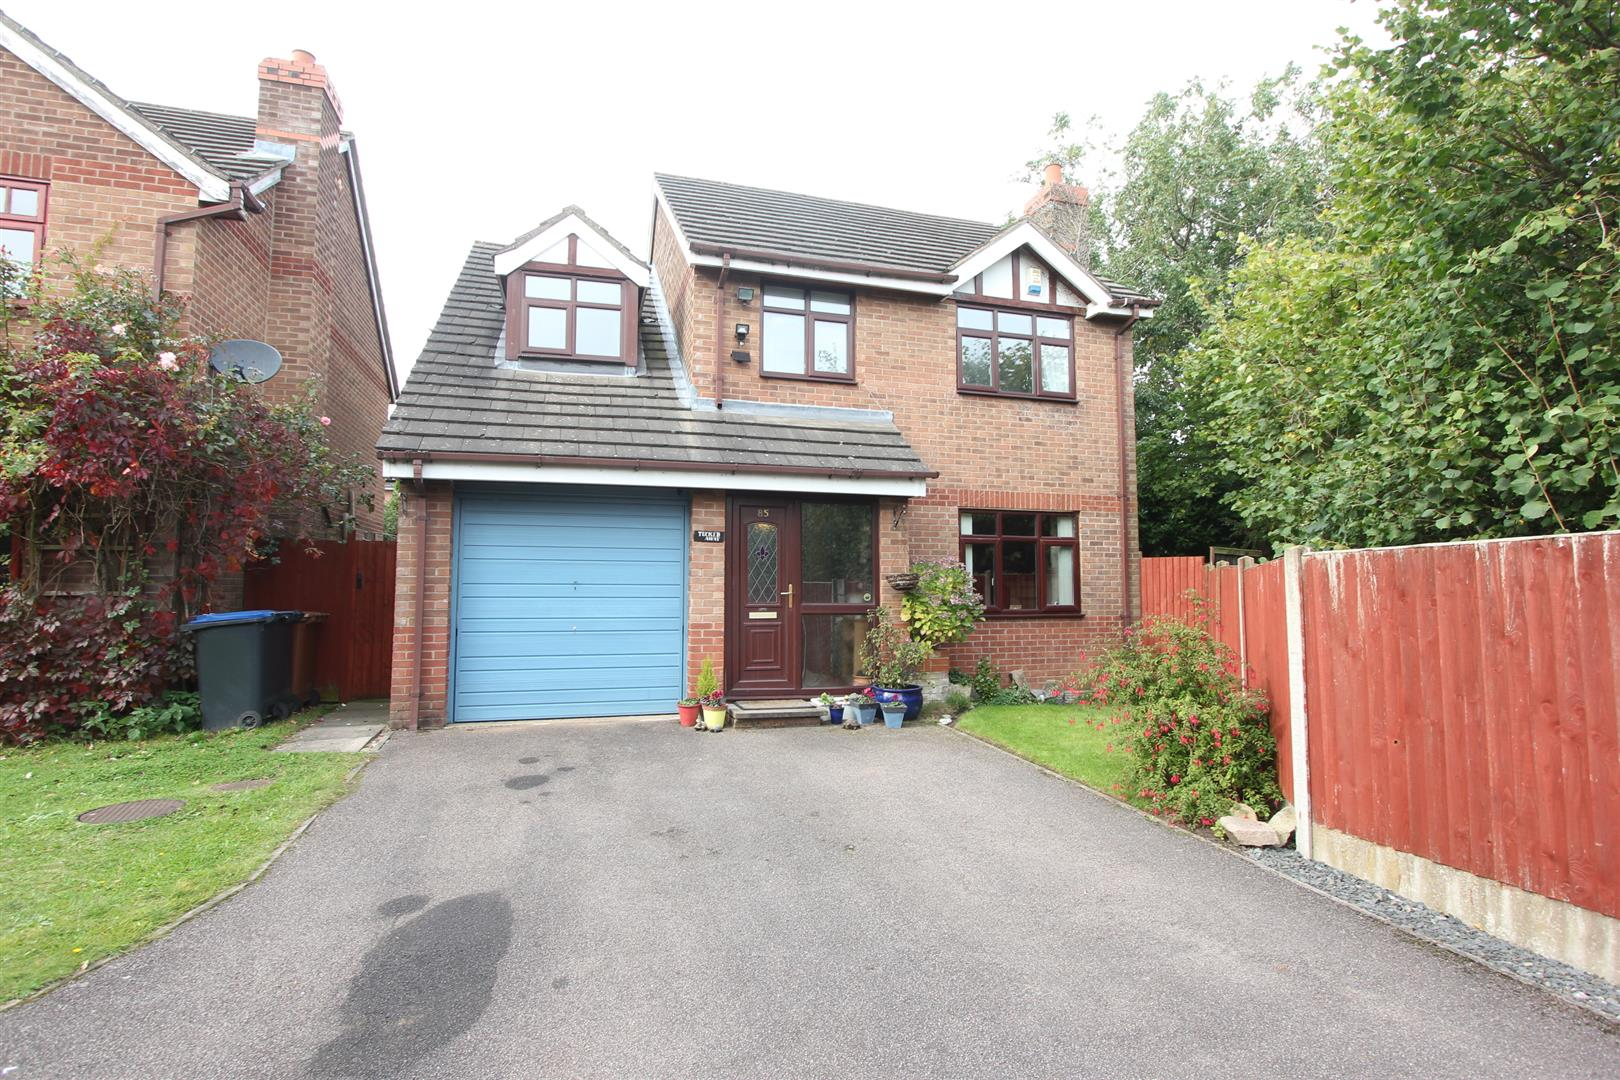 4 bed detached house for sale in barwell